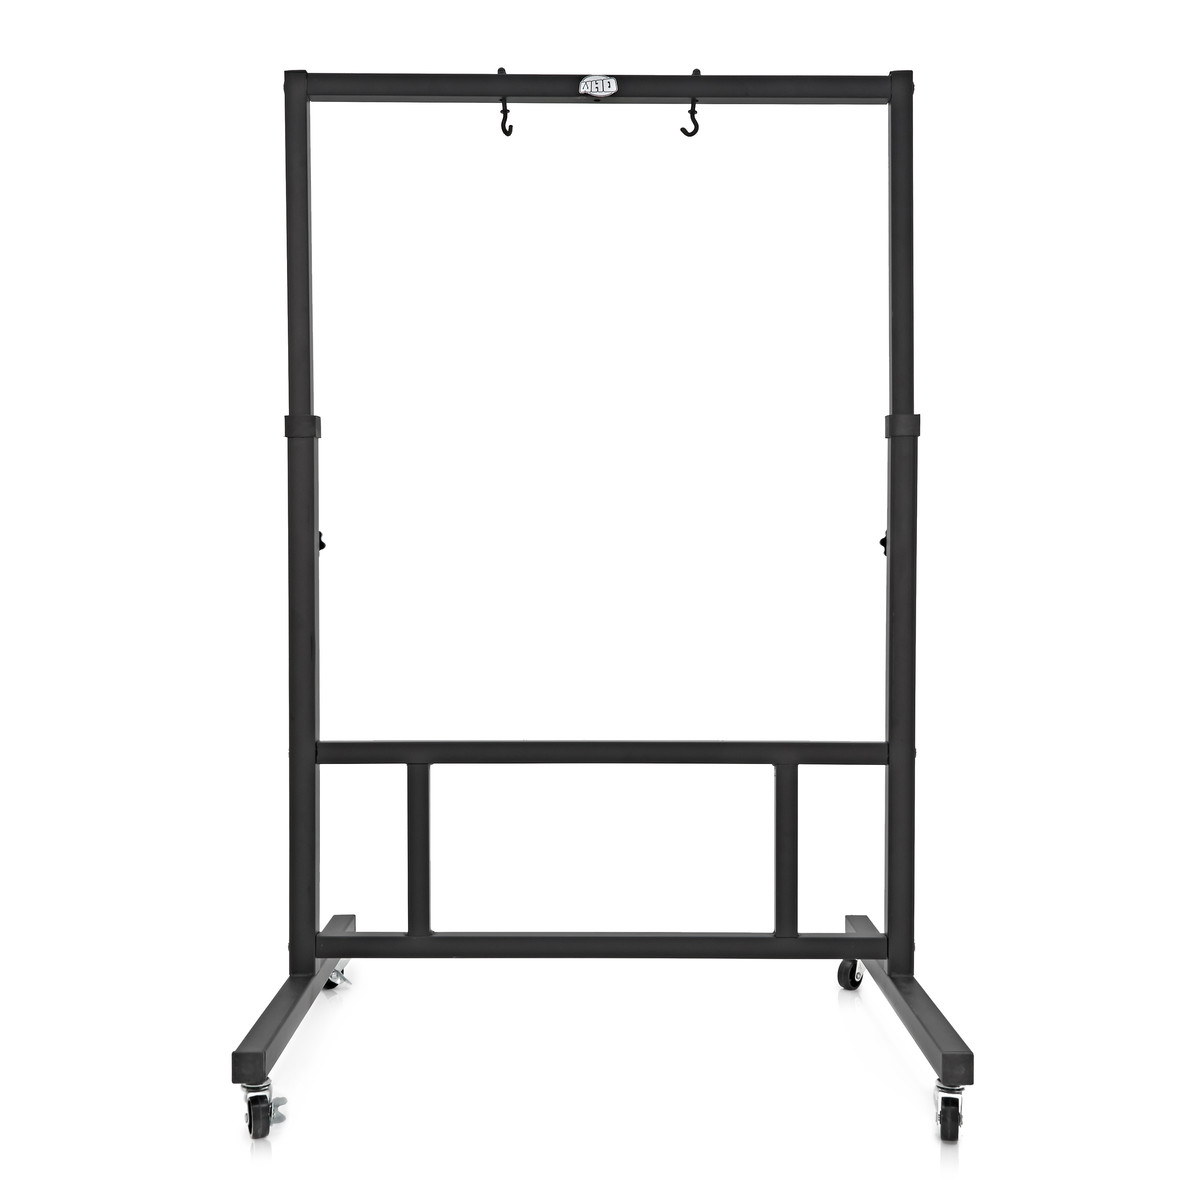 Whiteboard Ständer Whd Adjustable Gong Stand For Up To 20 Inch Gongs B Stock